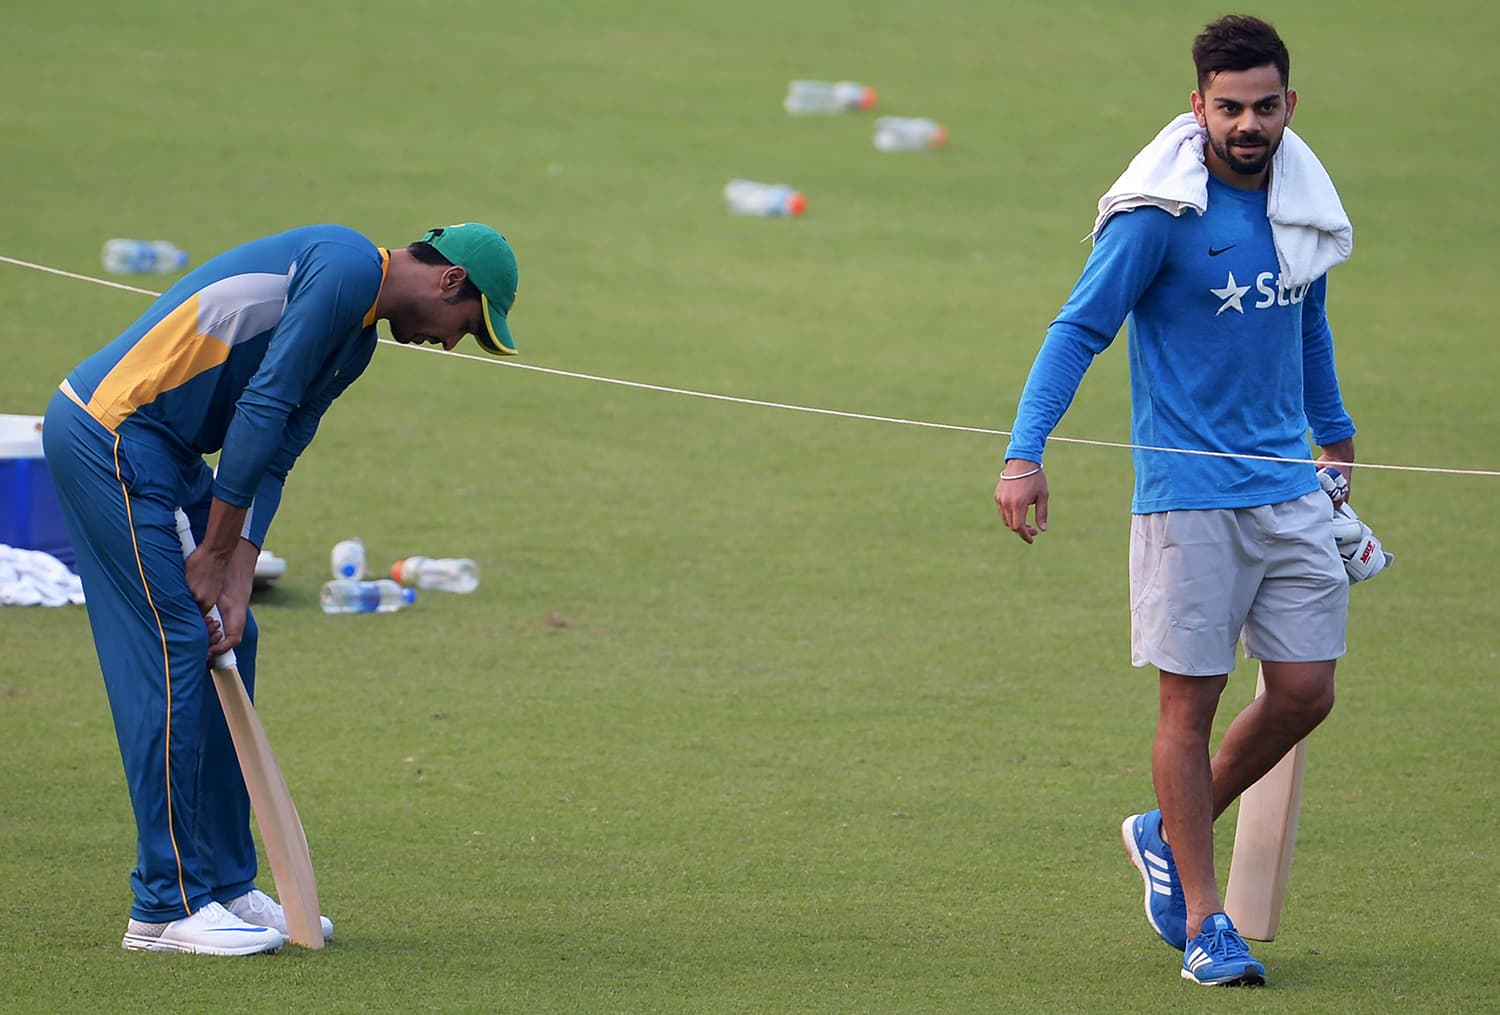 Amir checks a bat after he received it from Kohli during a training session in Kolkata. — AFP